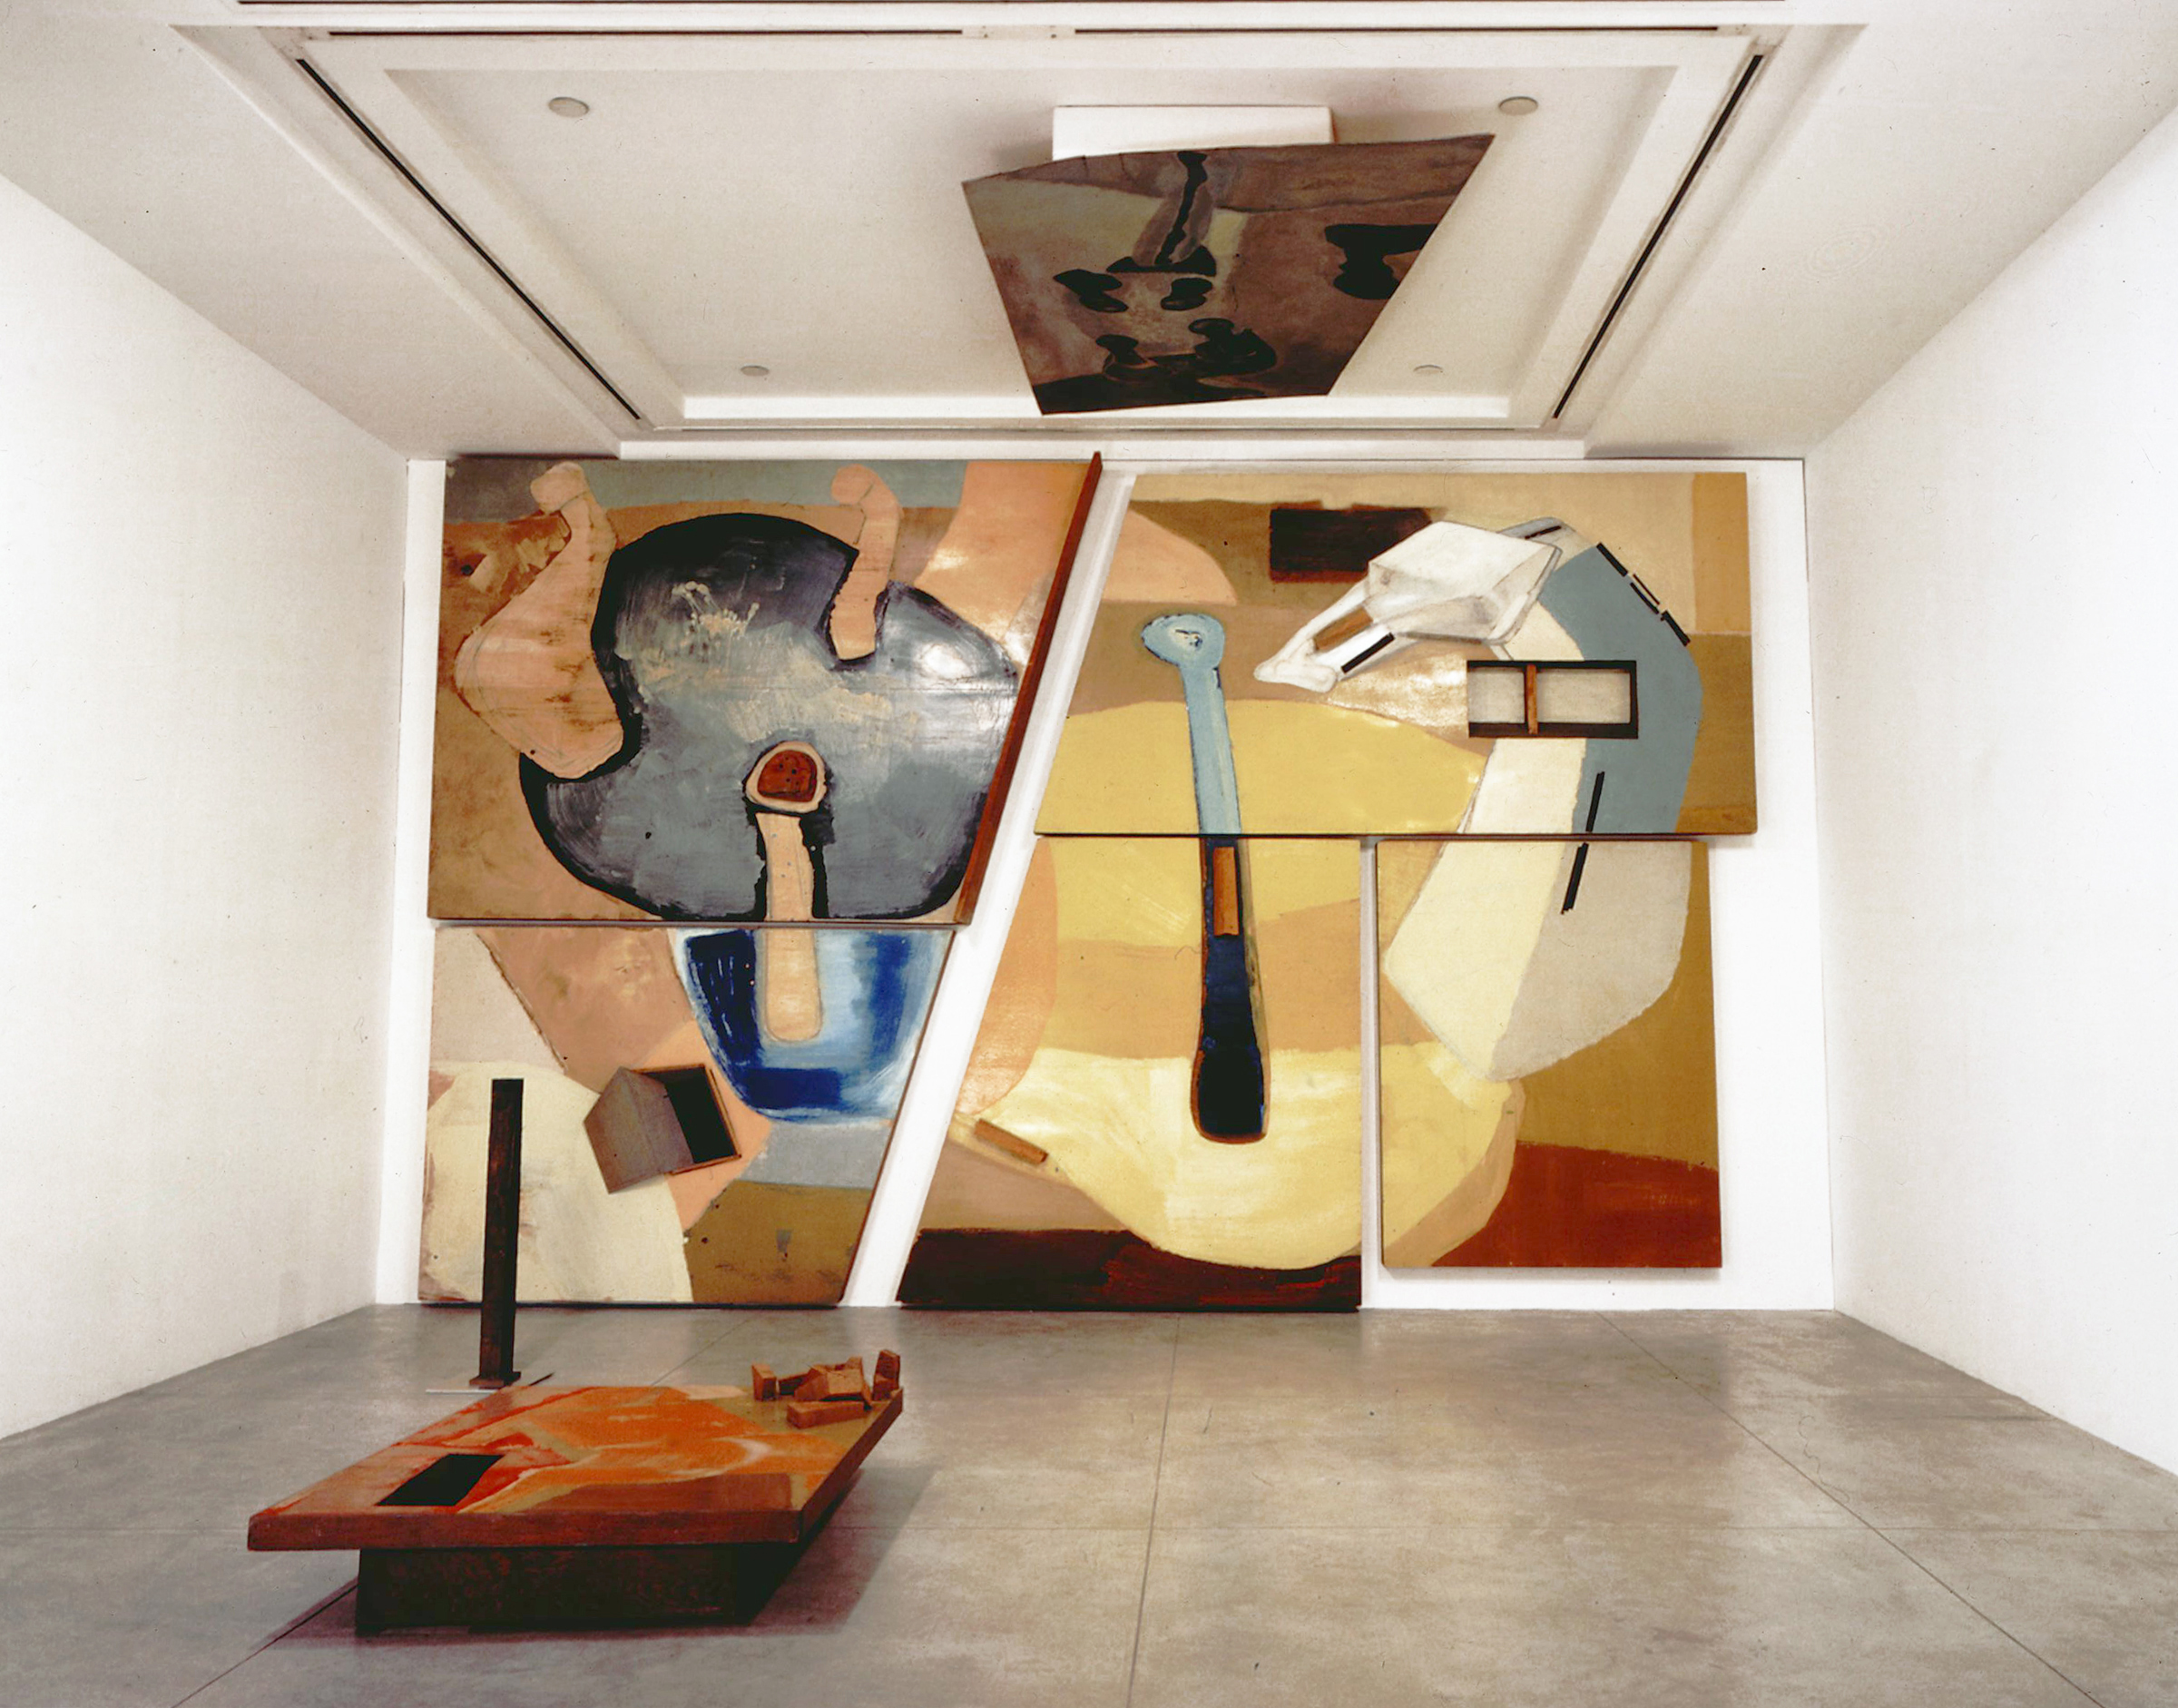 Frederick Kiesler  (1890-1965)  Large Horse Galaxy , 1954 Mixed media installation consisting of six wall panels, one table, one floor piece and one ceiling piece. Dimensions vary. Nine separate elements.